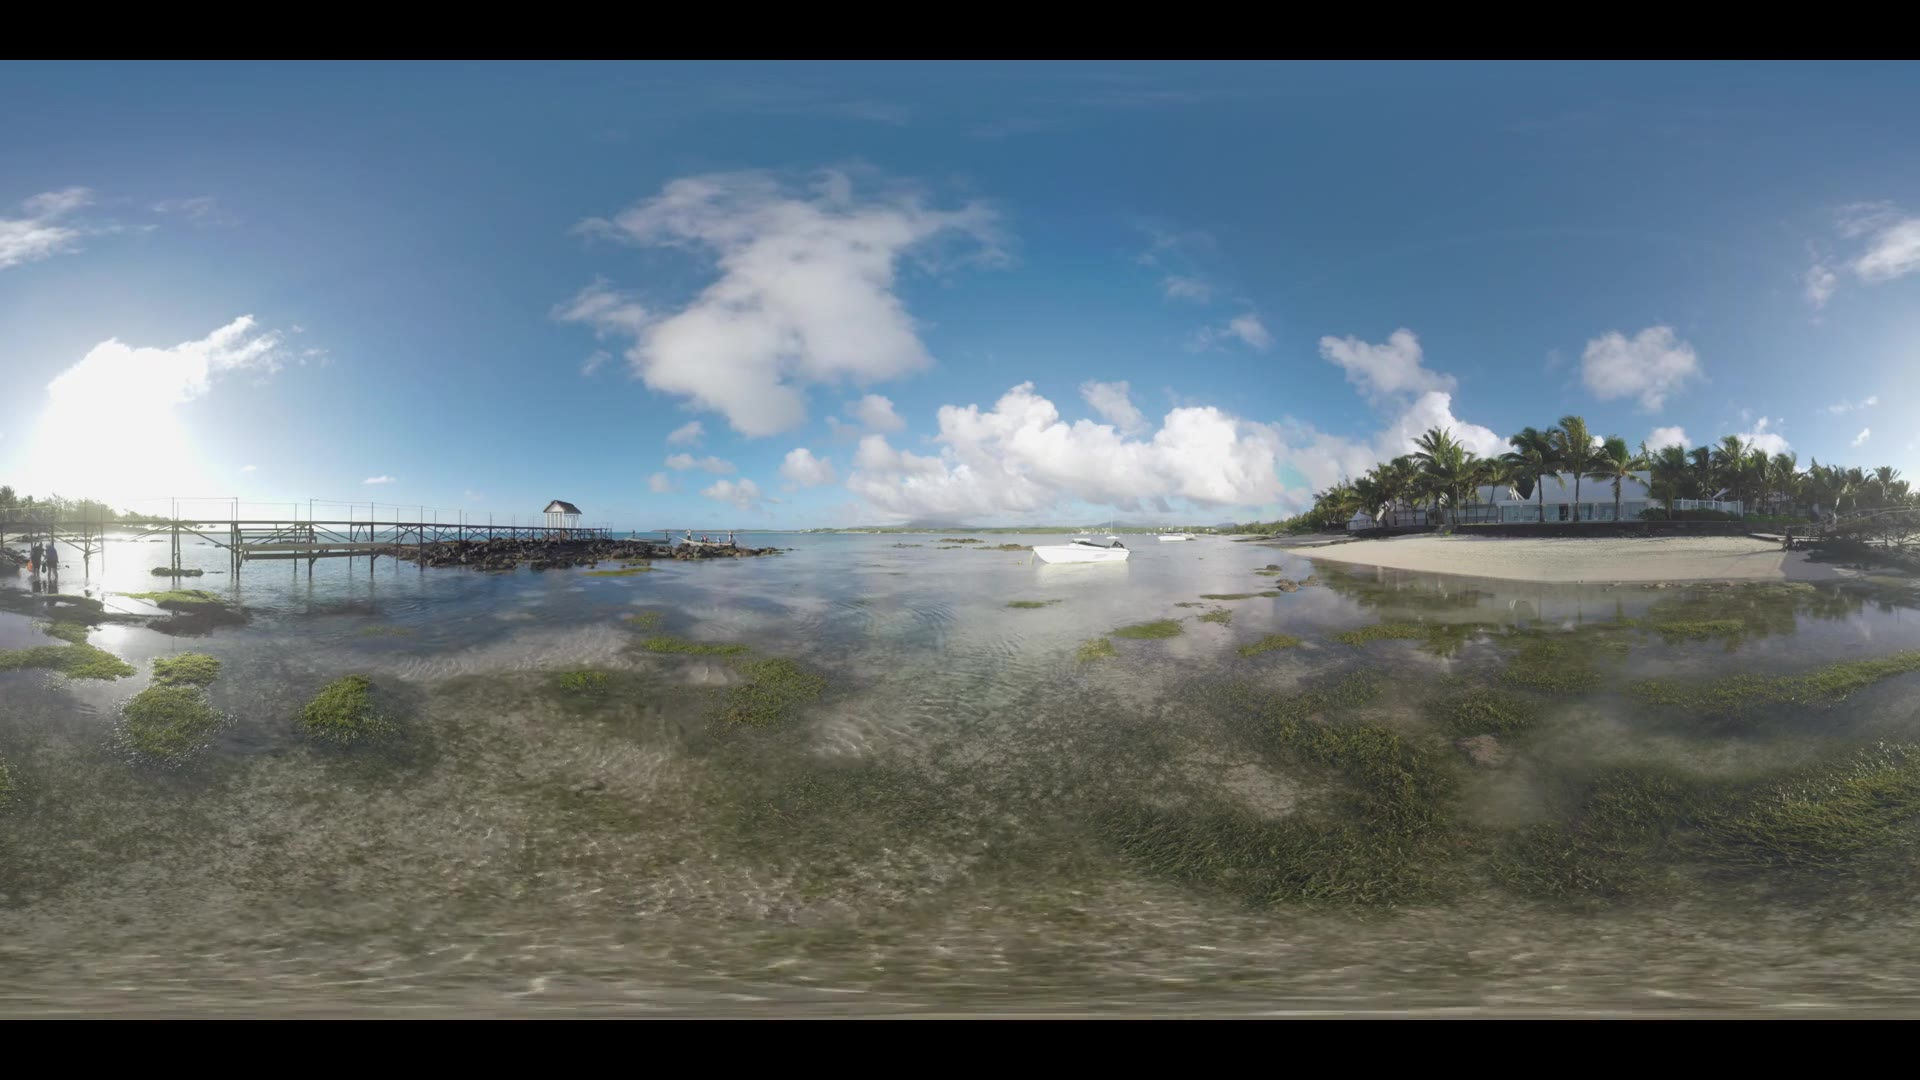 MAURITIUS ISLAND - JUNE 08, 2016: 360 VR video. View of beach line with palms, shallow water with boats and wooden pier in Mauritius on bright sunny day. People walking on the pier and in water